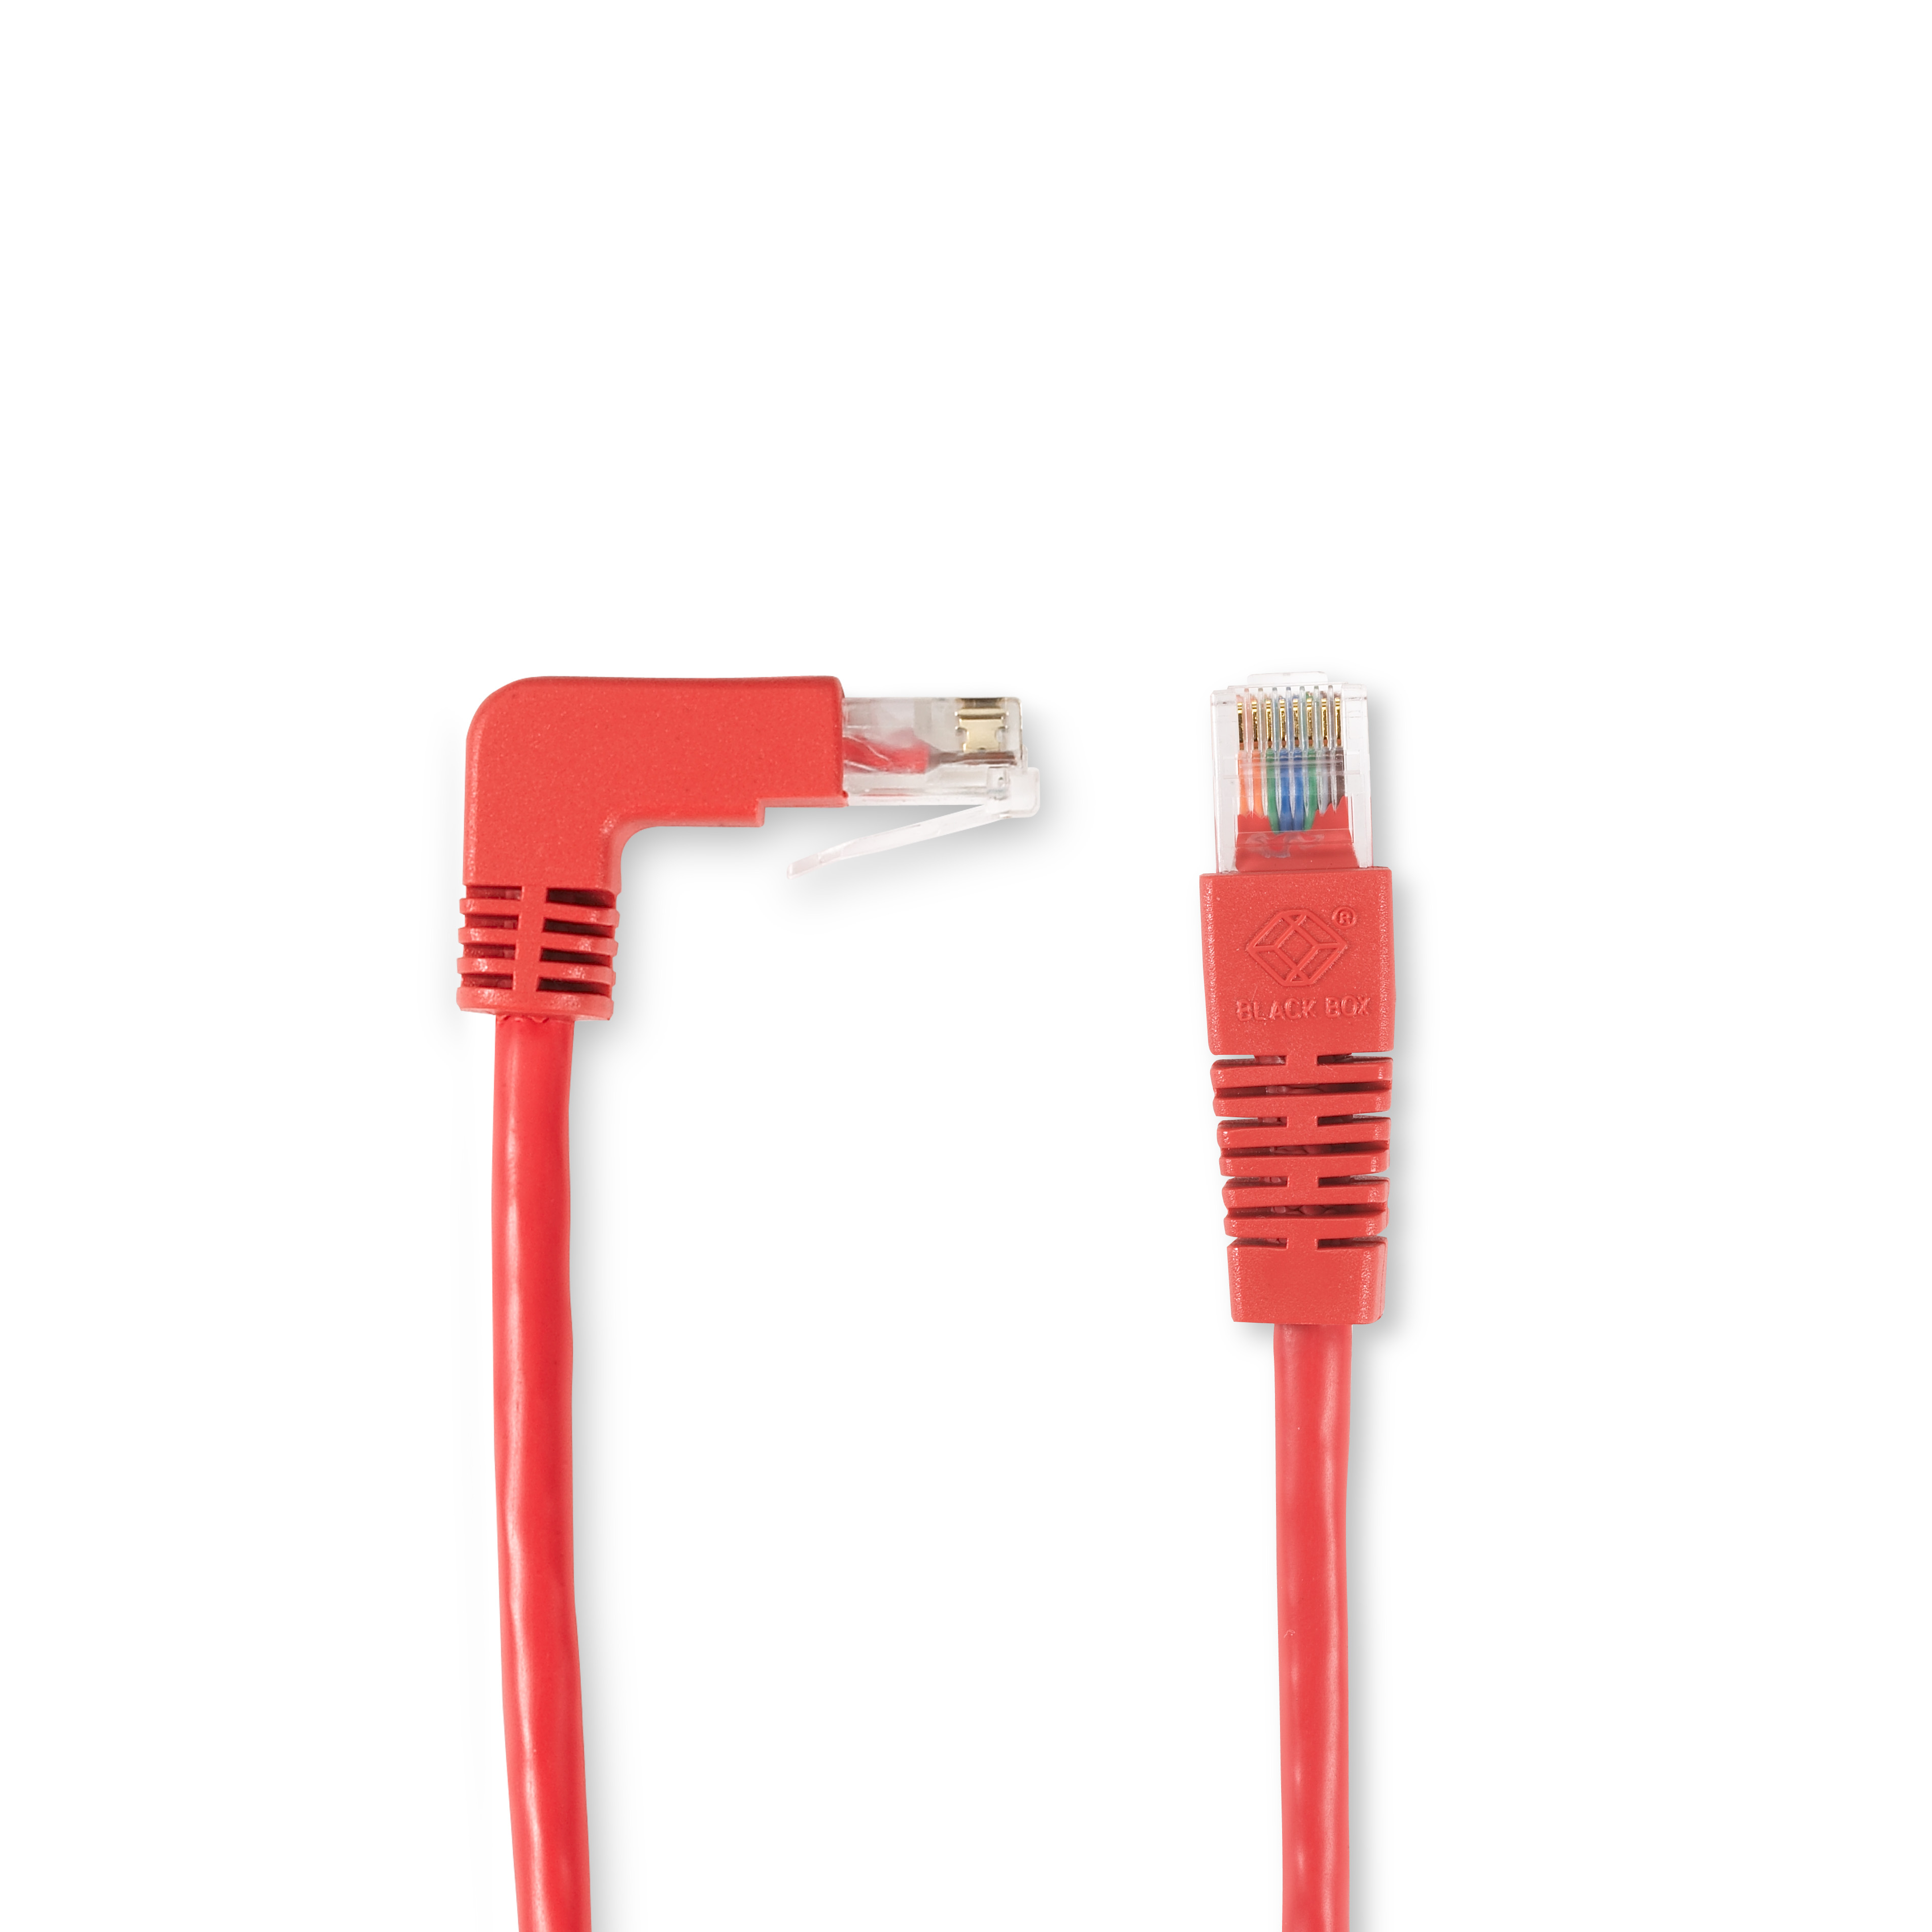 1FT Red CAT5e 100MHz Angled Patch Cable UTP Down-Straight | Black Box